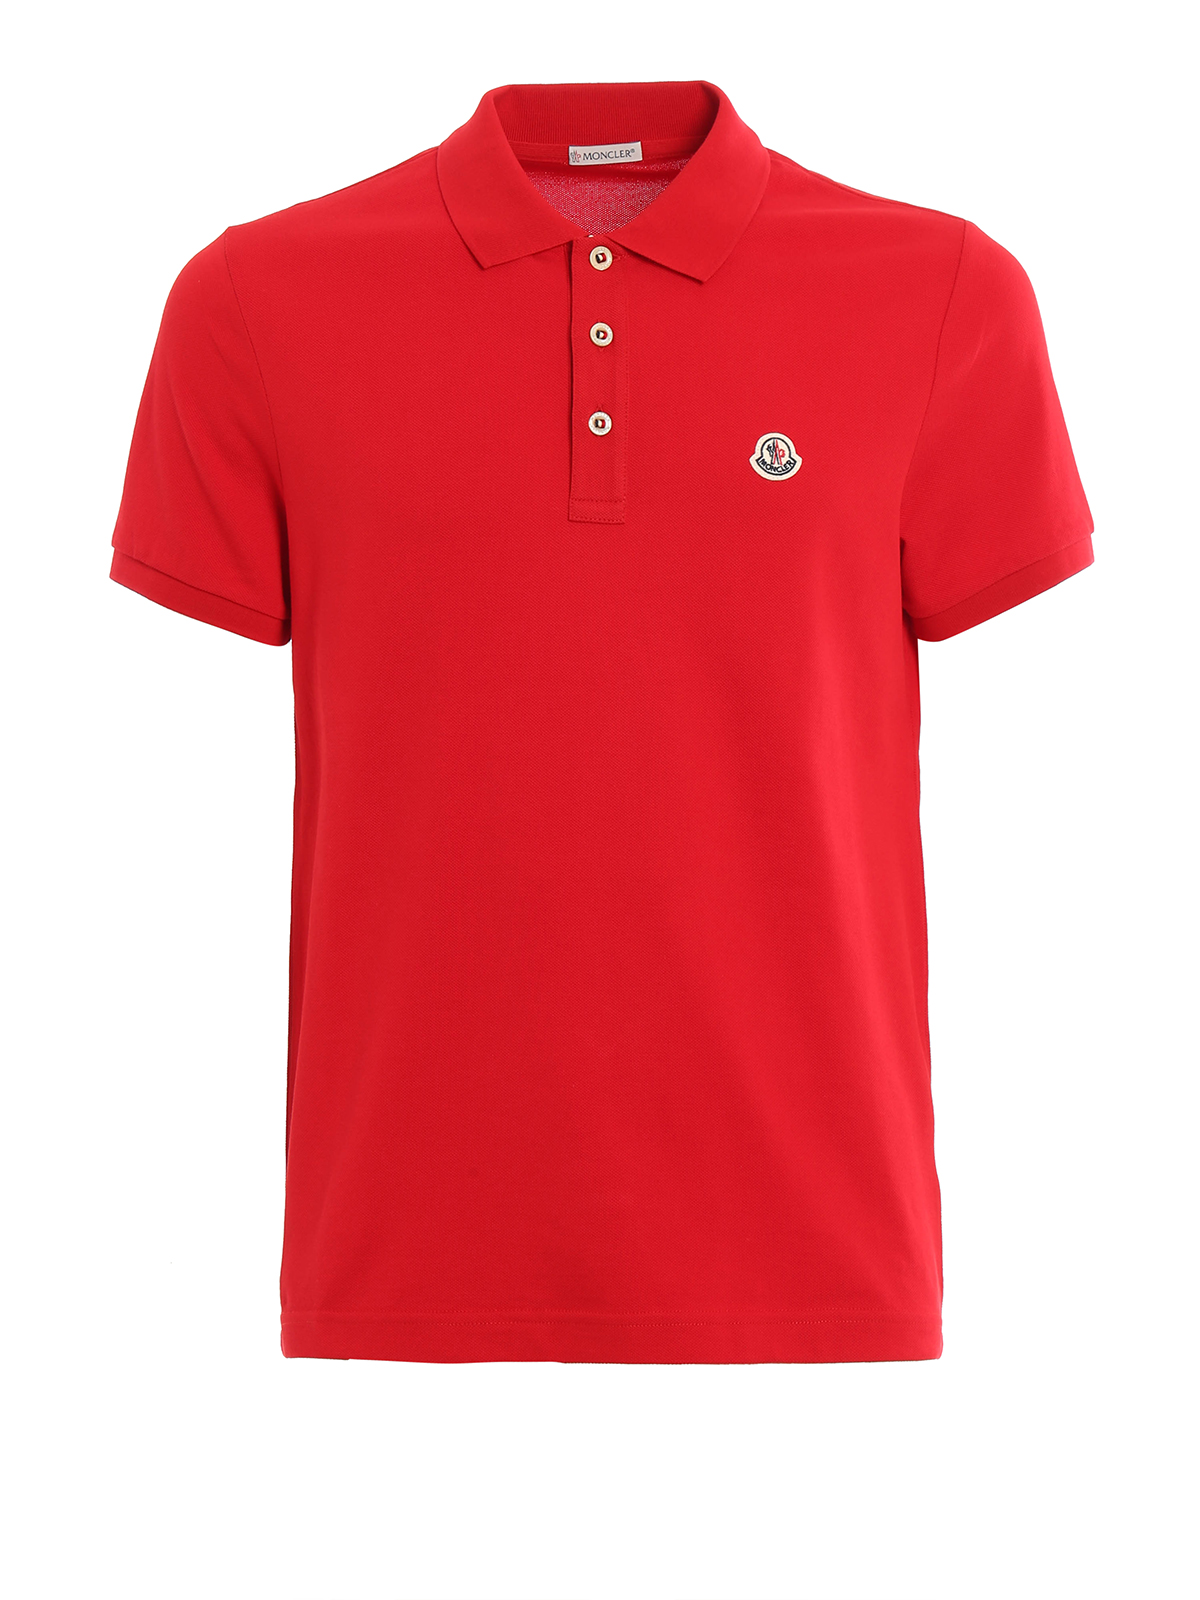 plain cotton pique polo shirt by moncler polo shirts shop online at. Black Bedroom Furniture Sets. Home Design Ideas